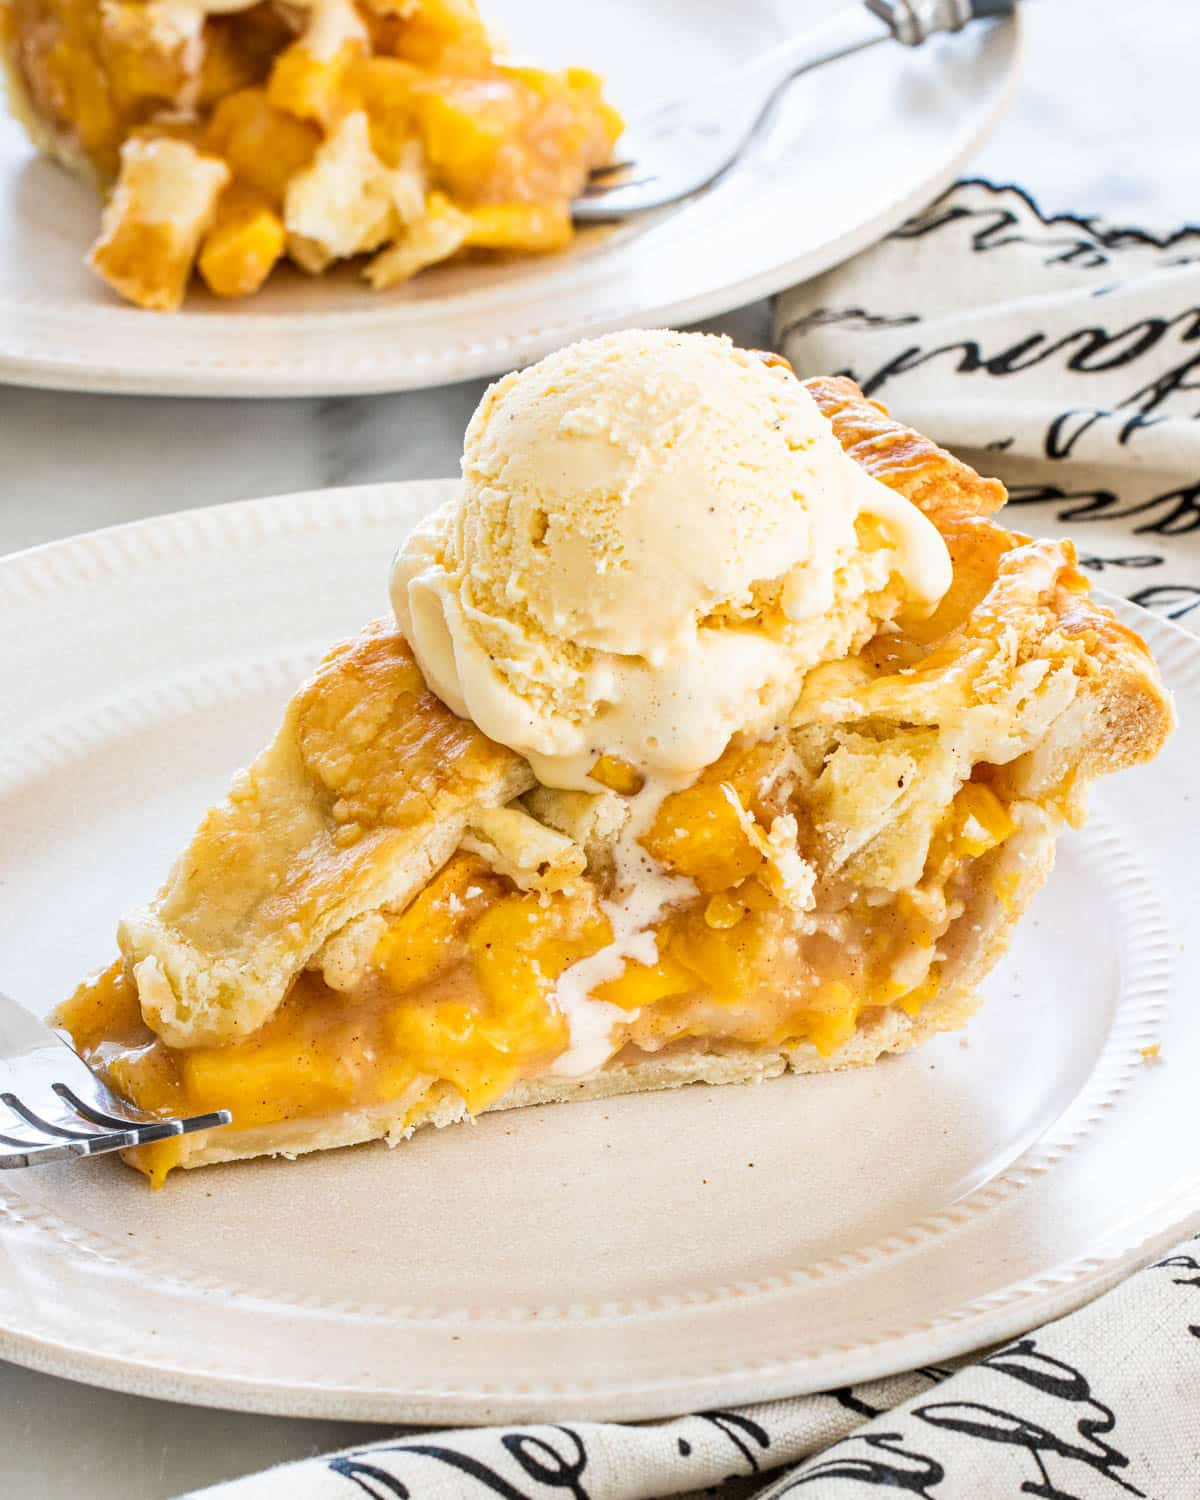 a slice of peach pie with a scoop of vanilla ice cream on it